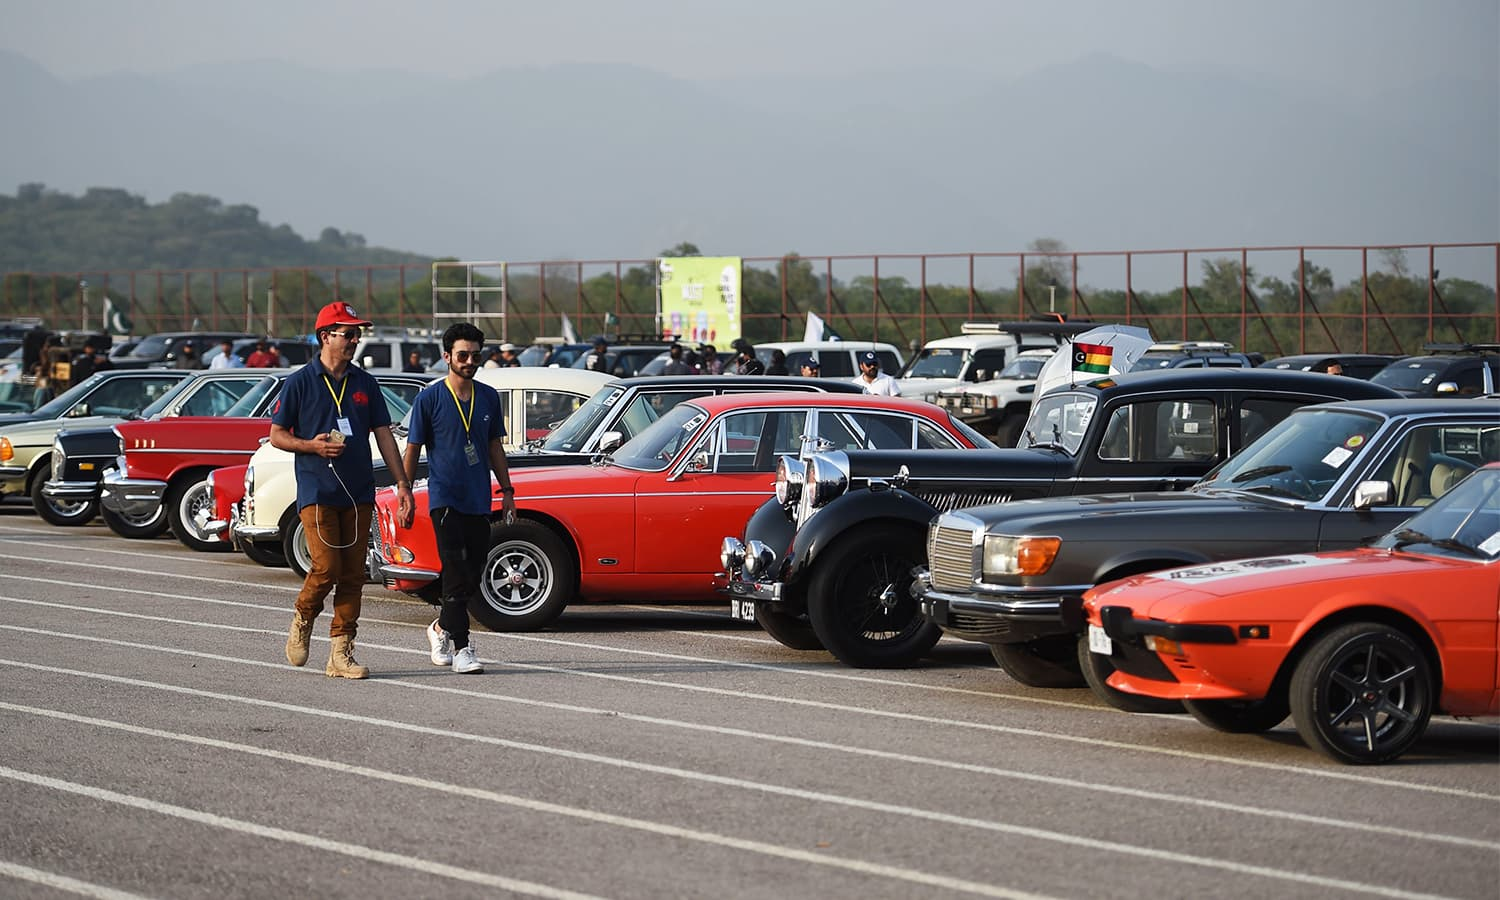 Participants walk past cars at the end of Motor Rally in Islamabad.— AFP